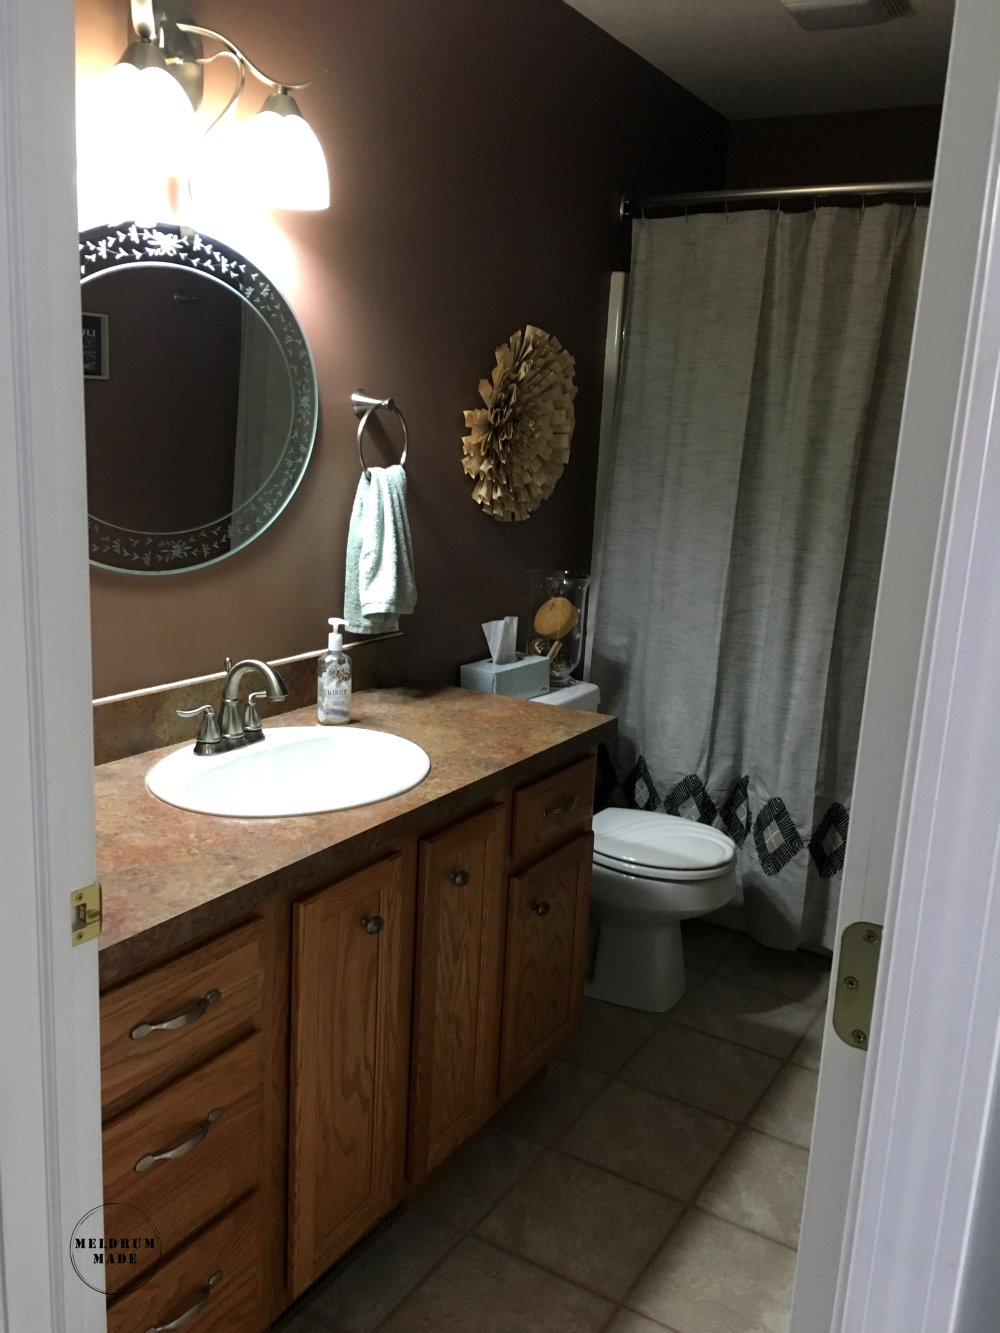 Our main floor bathroom before the weekend reno! Flip to include painted cabinets, fresh wall color, subway tile, and a new countertop.